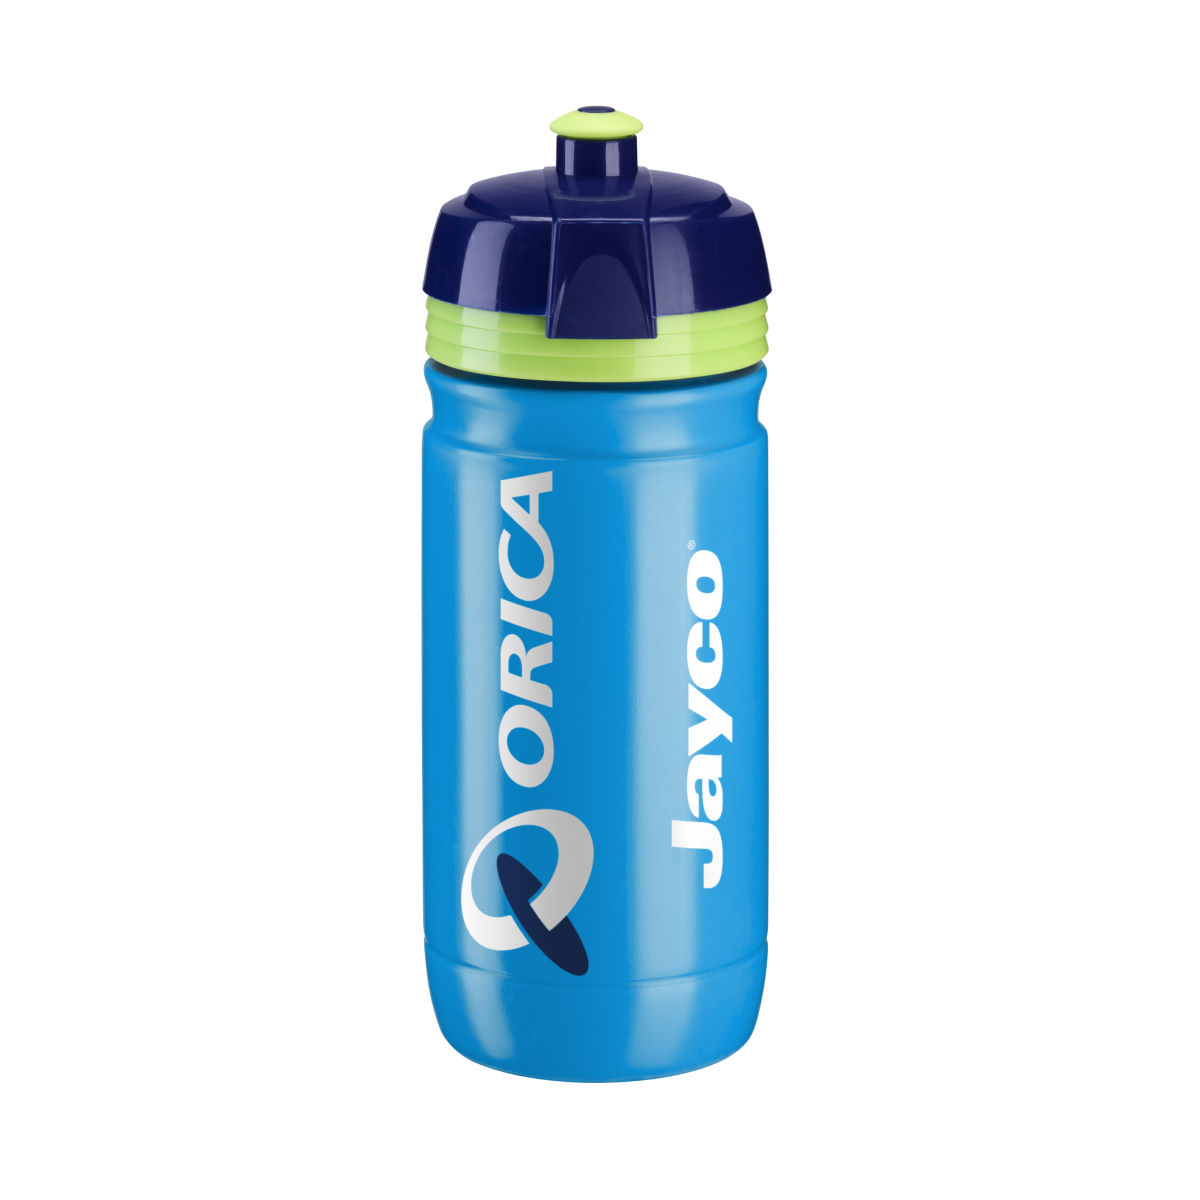 Bidon Elite Corsa Team (550 ml, 2014) - 550ml ORICA-GREENEDGE Bidons